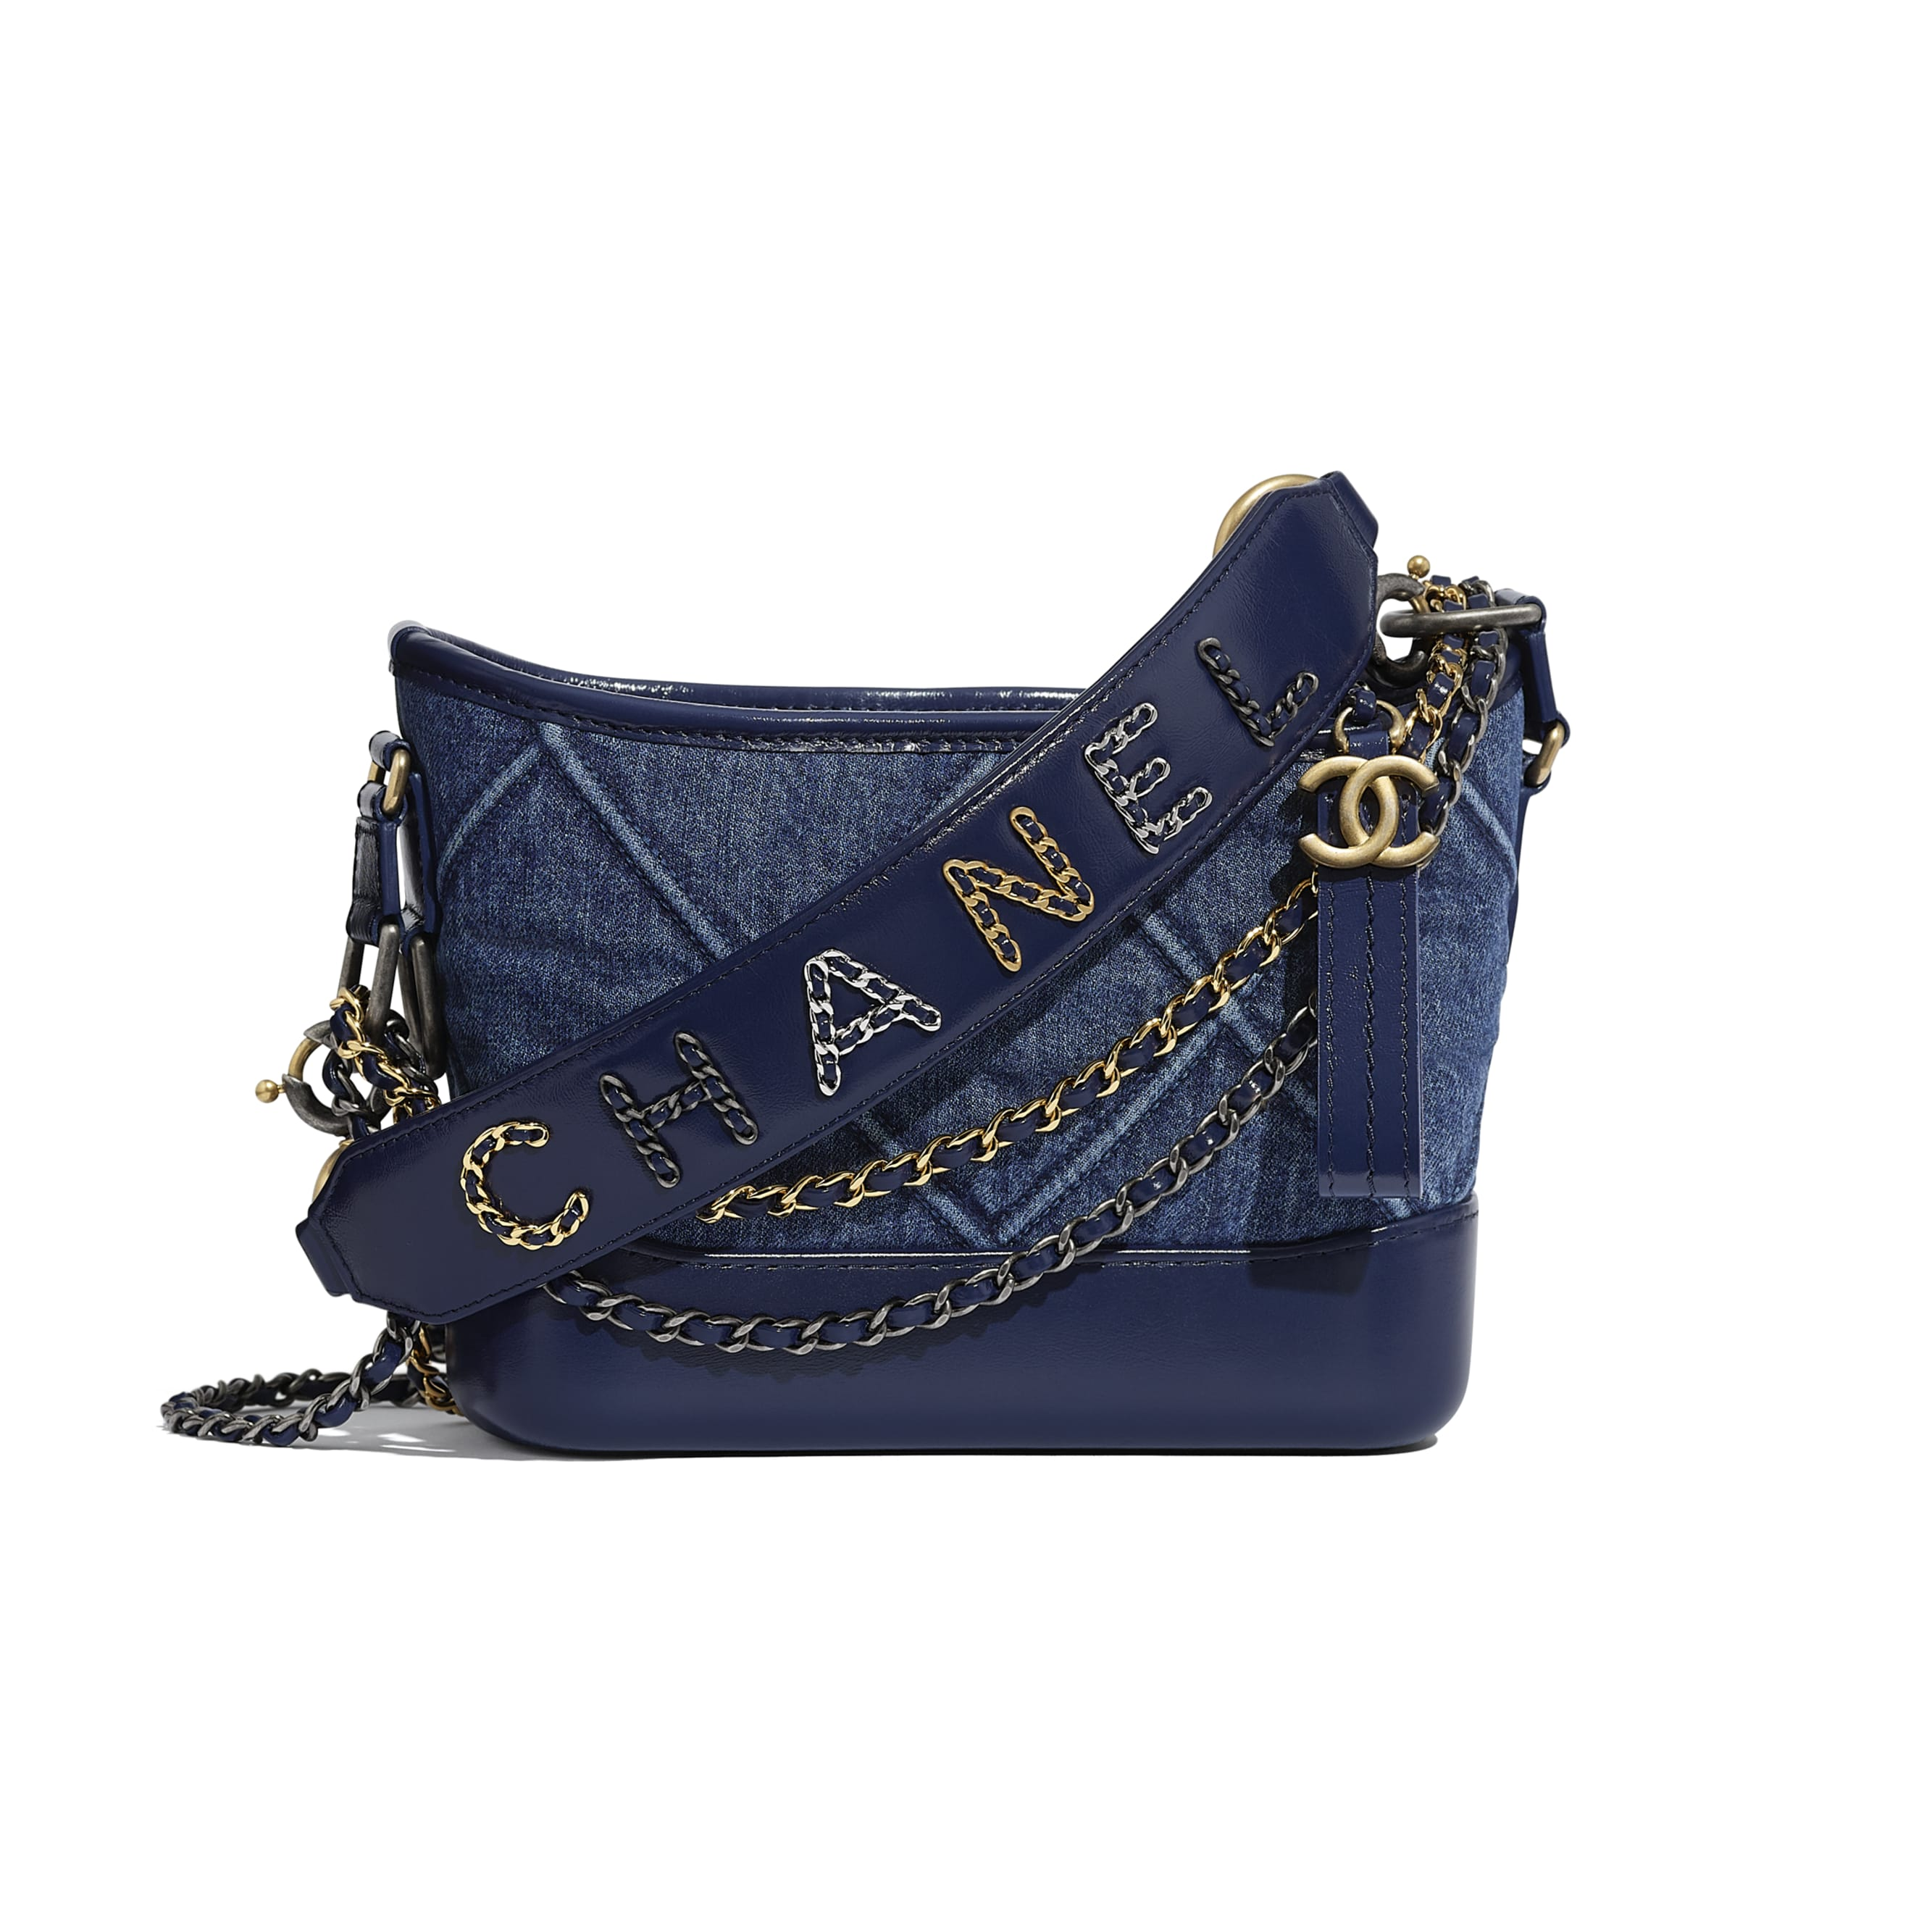 CHANEL'S GABRIELLE Small Hobo Bag - Blue - Denim, Calfskin, Gold-Tone, Silver-Tone & Ruthenium-Finish Metal - Default view - see standard sized version